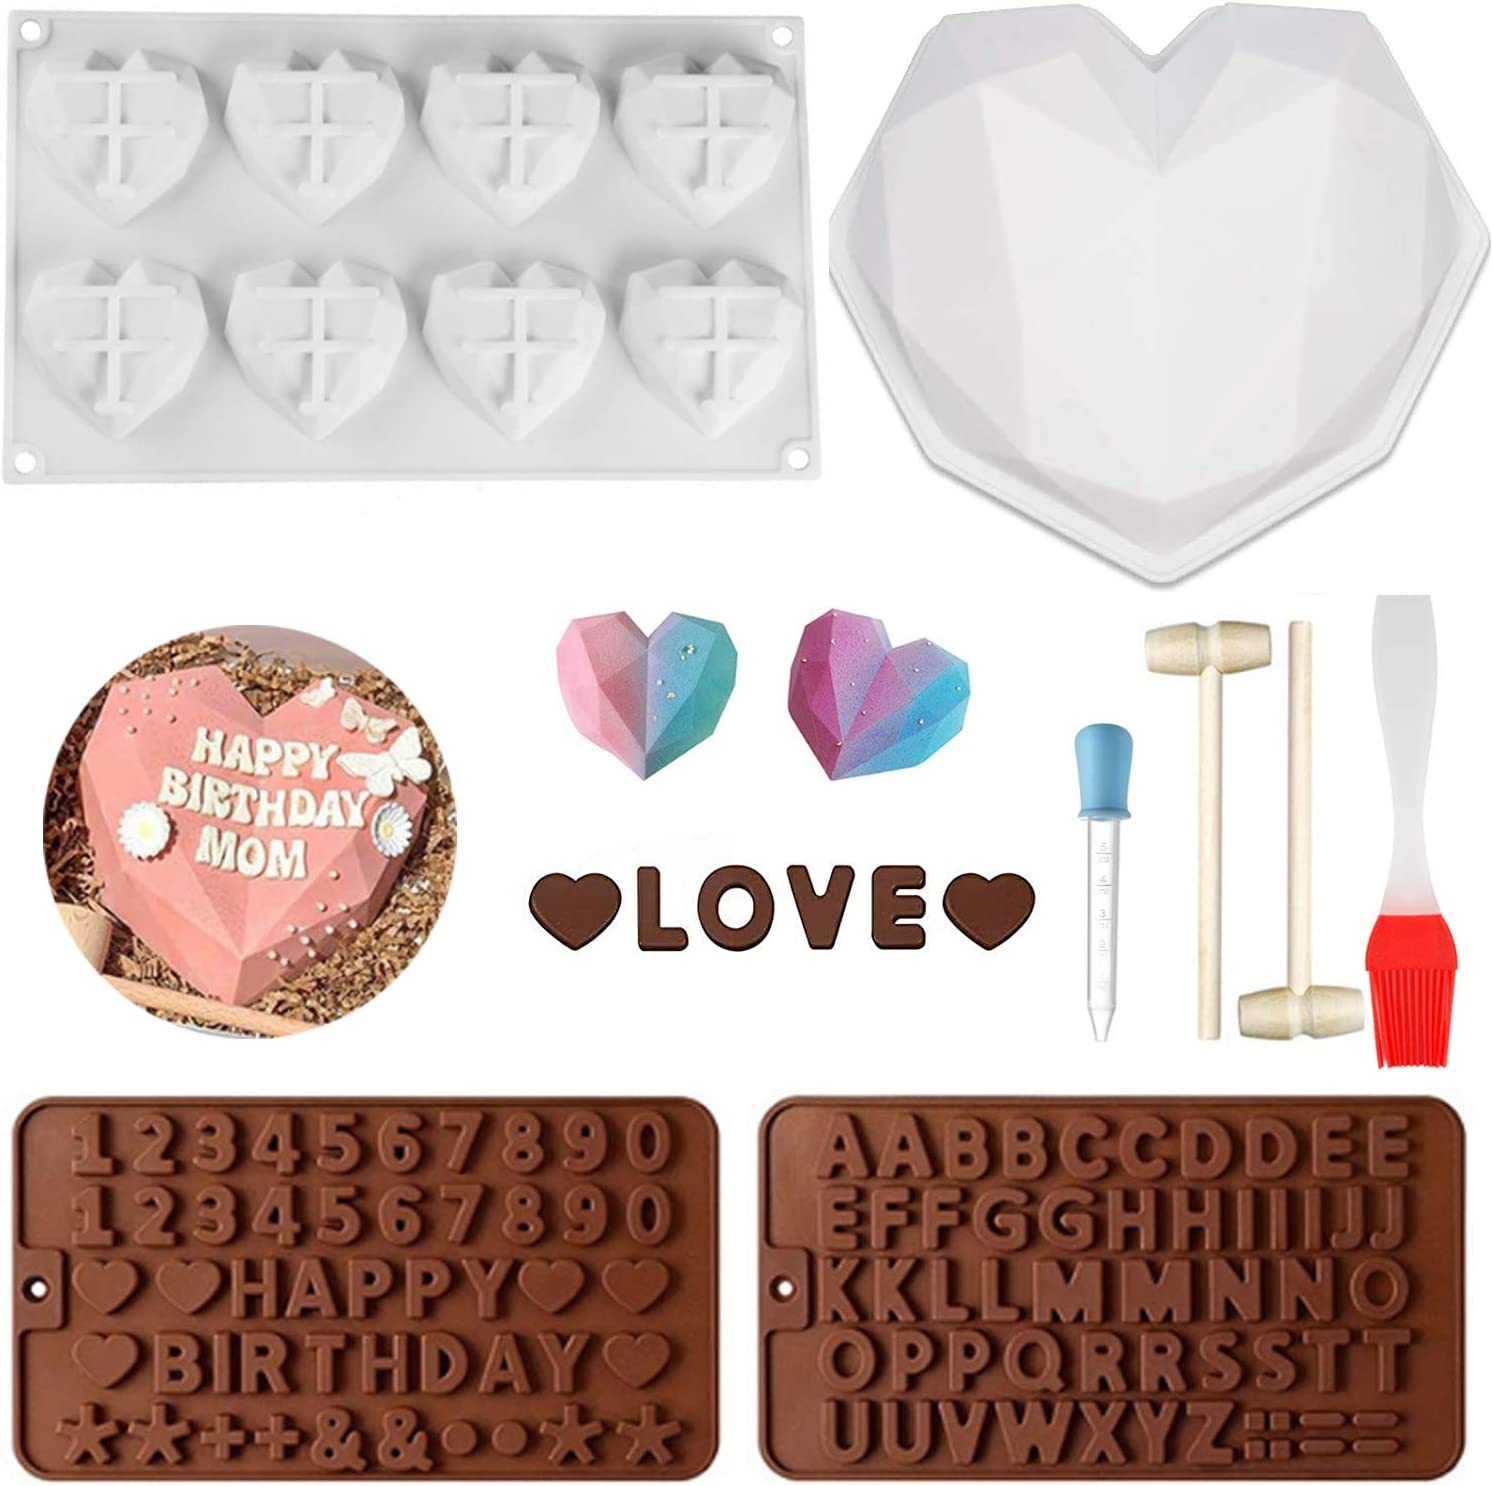 Diamond Heart Shaped Mousse Cake Mold Trays, Silicone Dessert Baking Pan Safe Not Sticky Mould with Dropper,Pastry& Brushes,Chocolate Molds for Home Kitchen DIY Baking Tools (Diamond Heart Shaped)